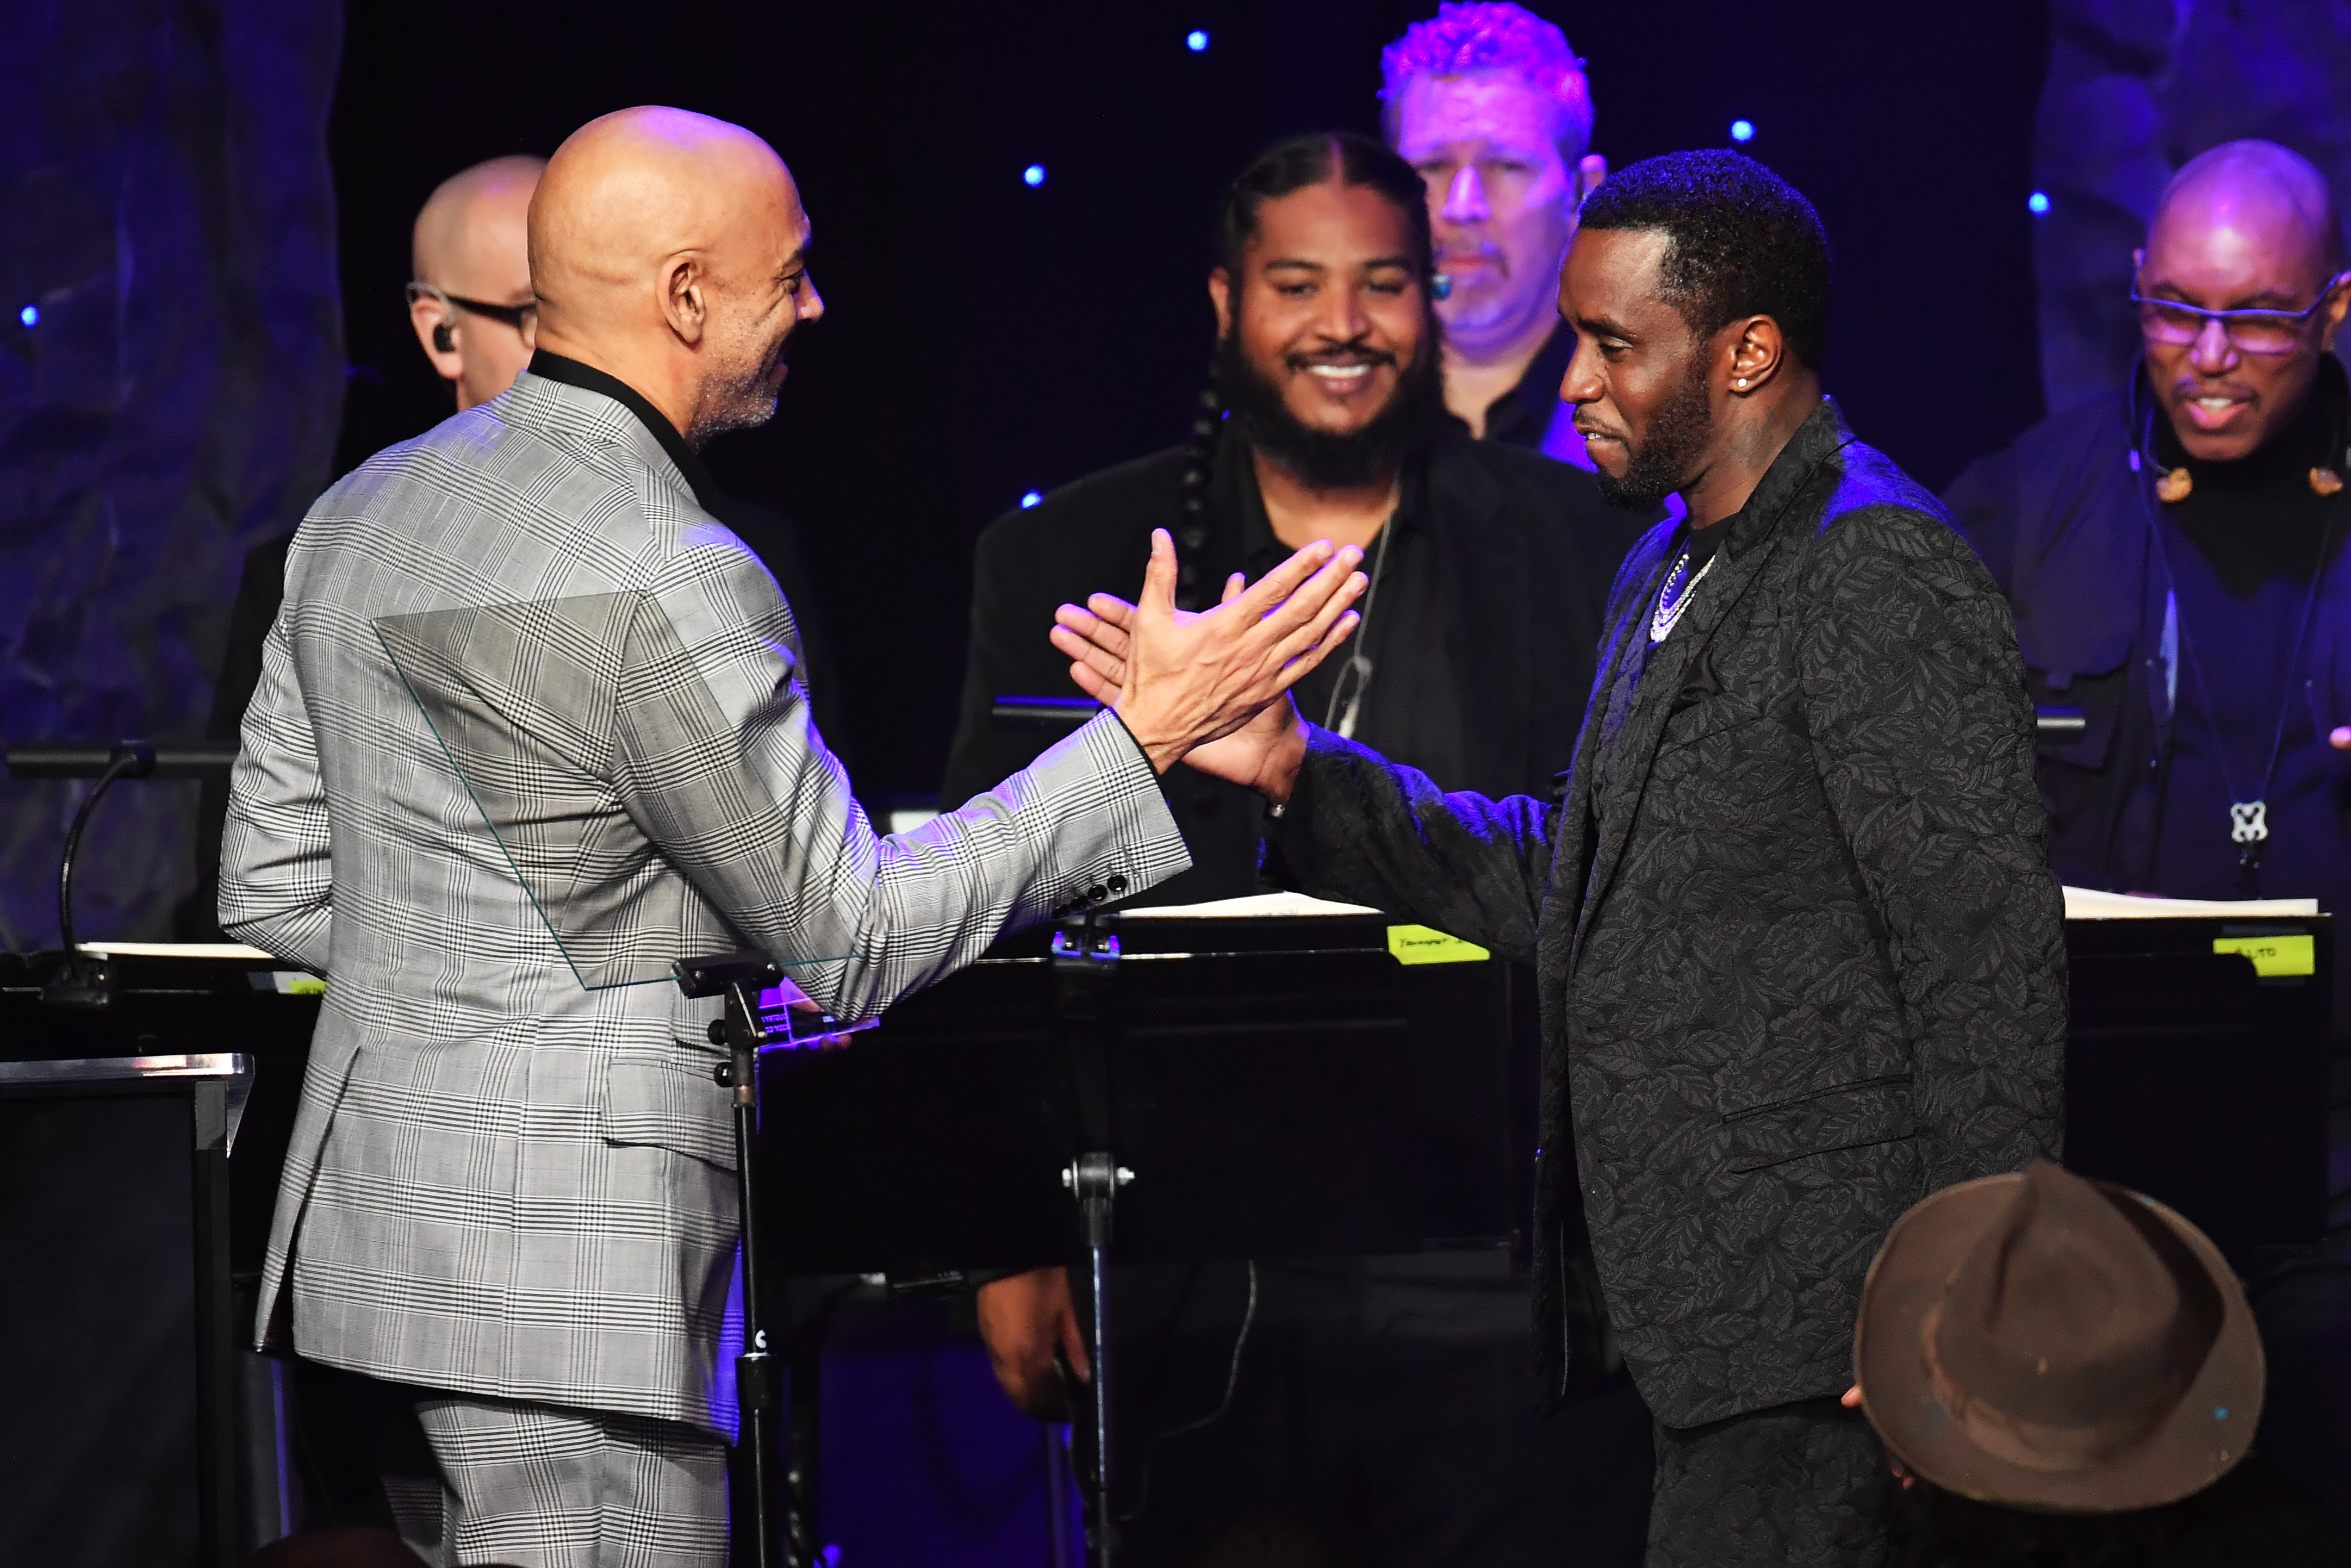 """Chair of the Board of Trustees of the Recording Academy Harvey Mason Jr. presents the President's Merit Award to honoree Sean """"Diddy"""" Combs onstage during a pre-Grammy event Sunday in Beverly Hills."""